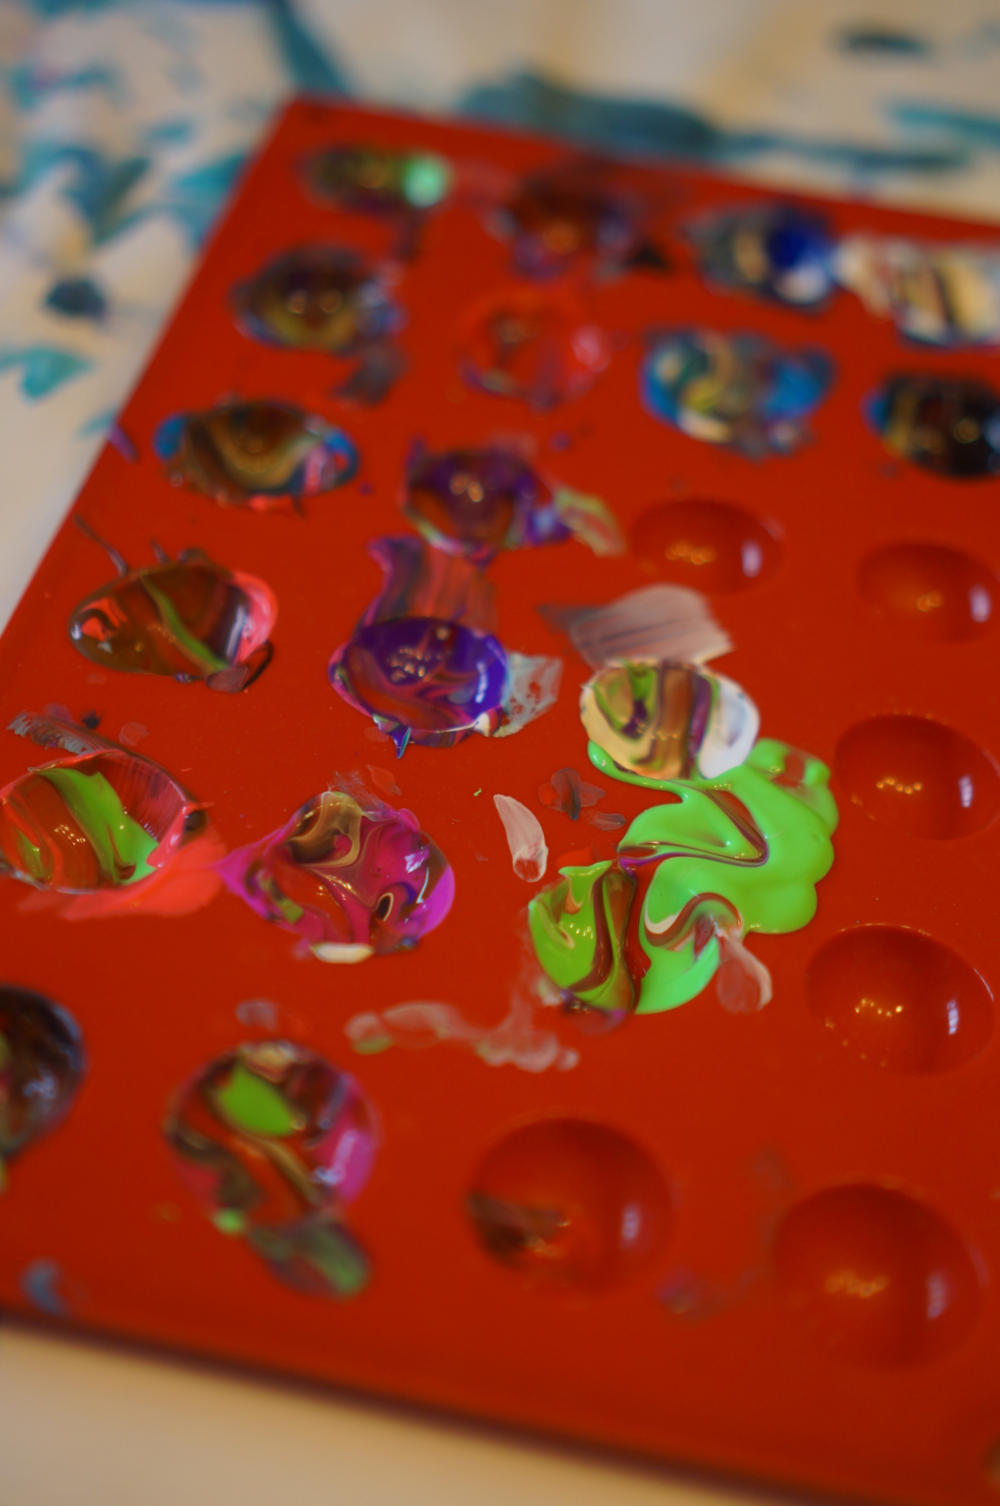 Silicone candy molds make for great paint trays.